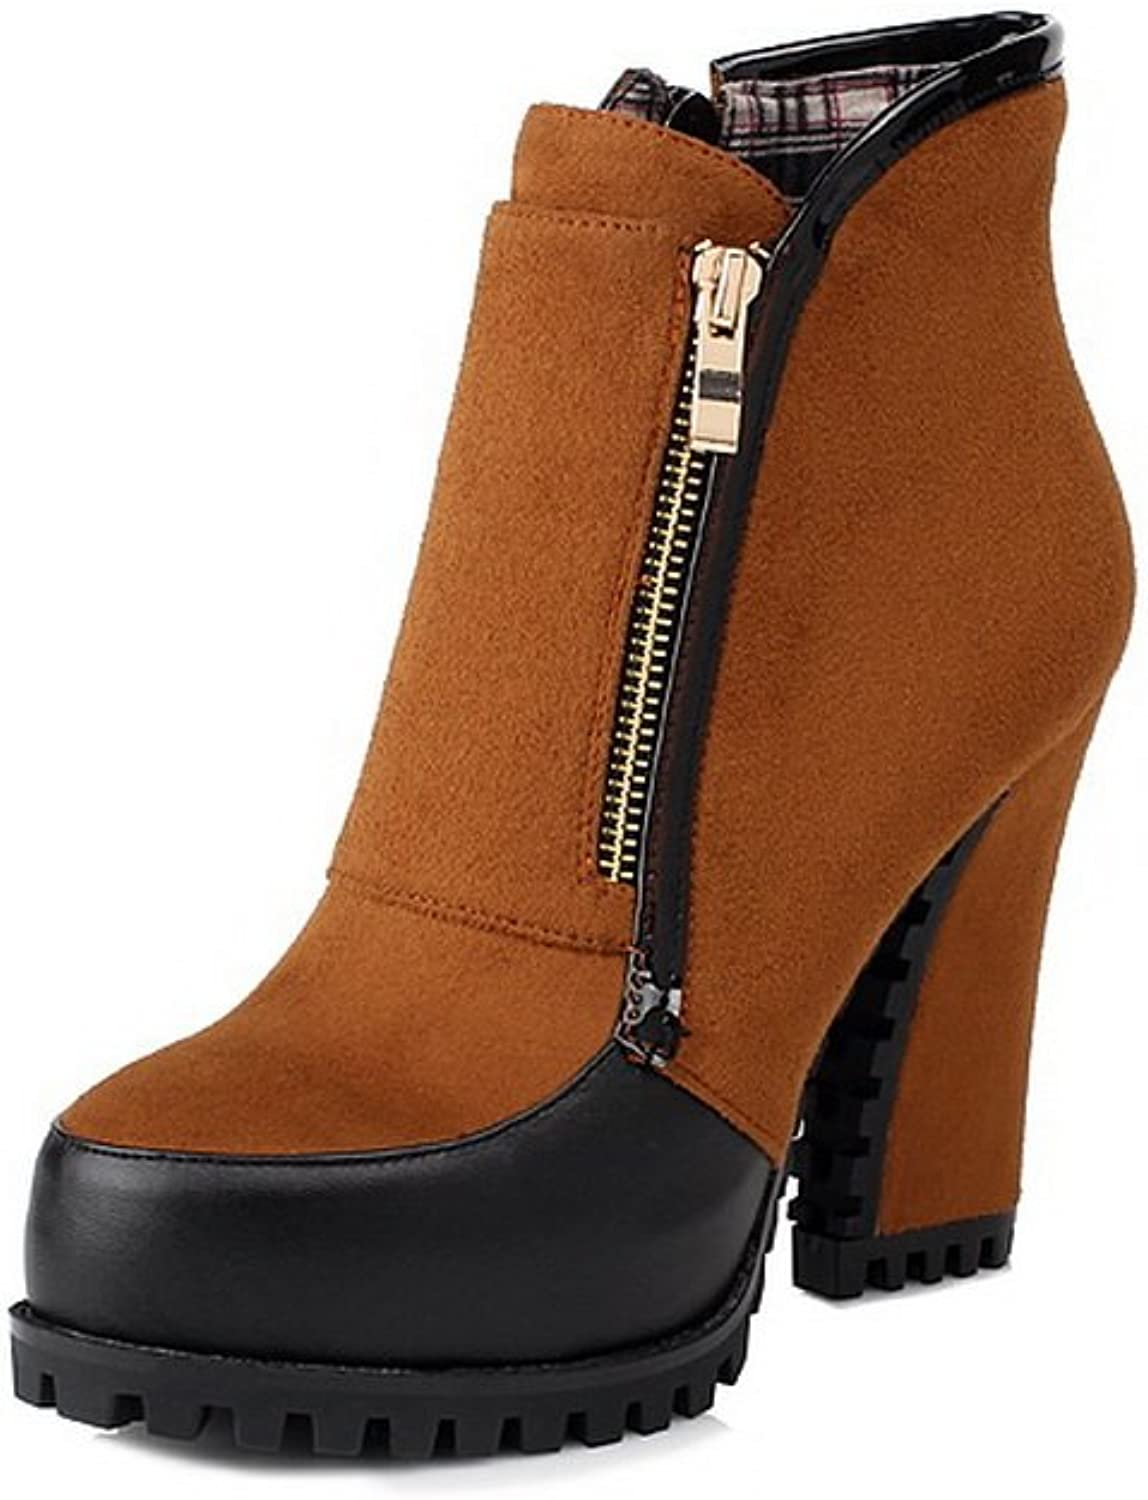 WeiPoot Women's PU Round Closed Toe High-Heels Solid Boots, Camel, 35